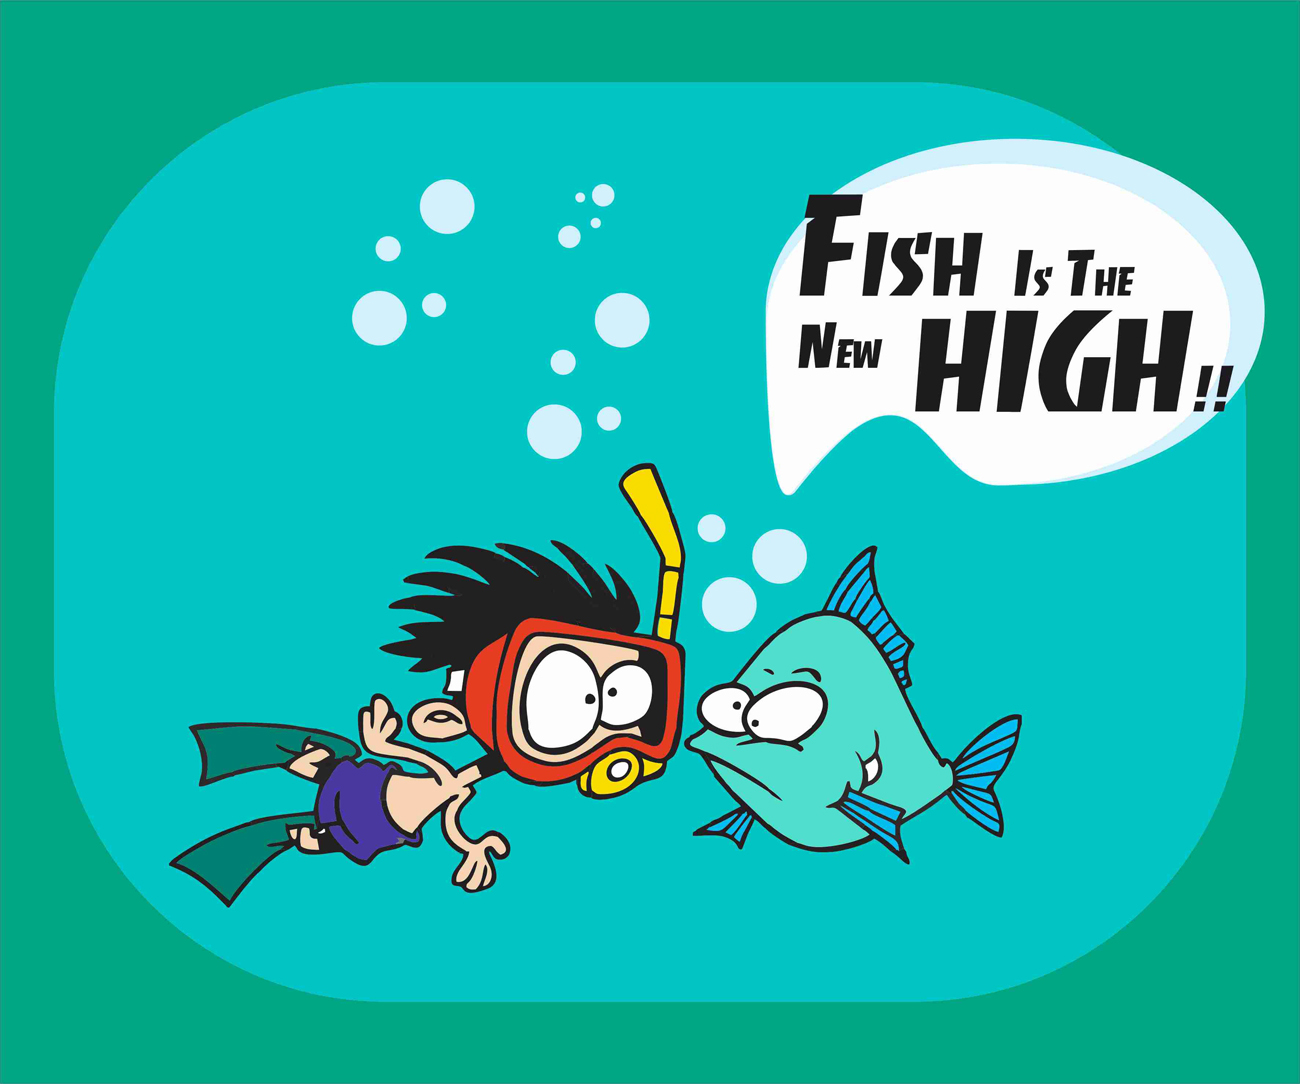 Fish is high